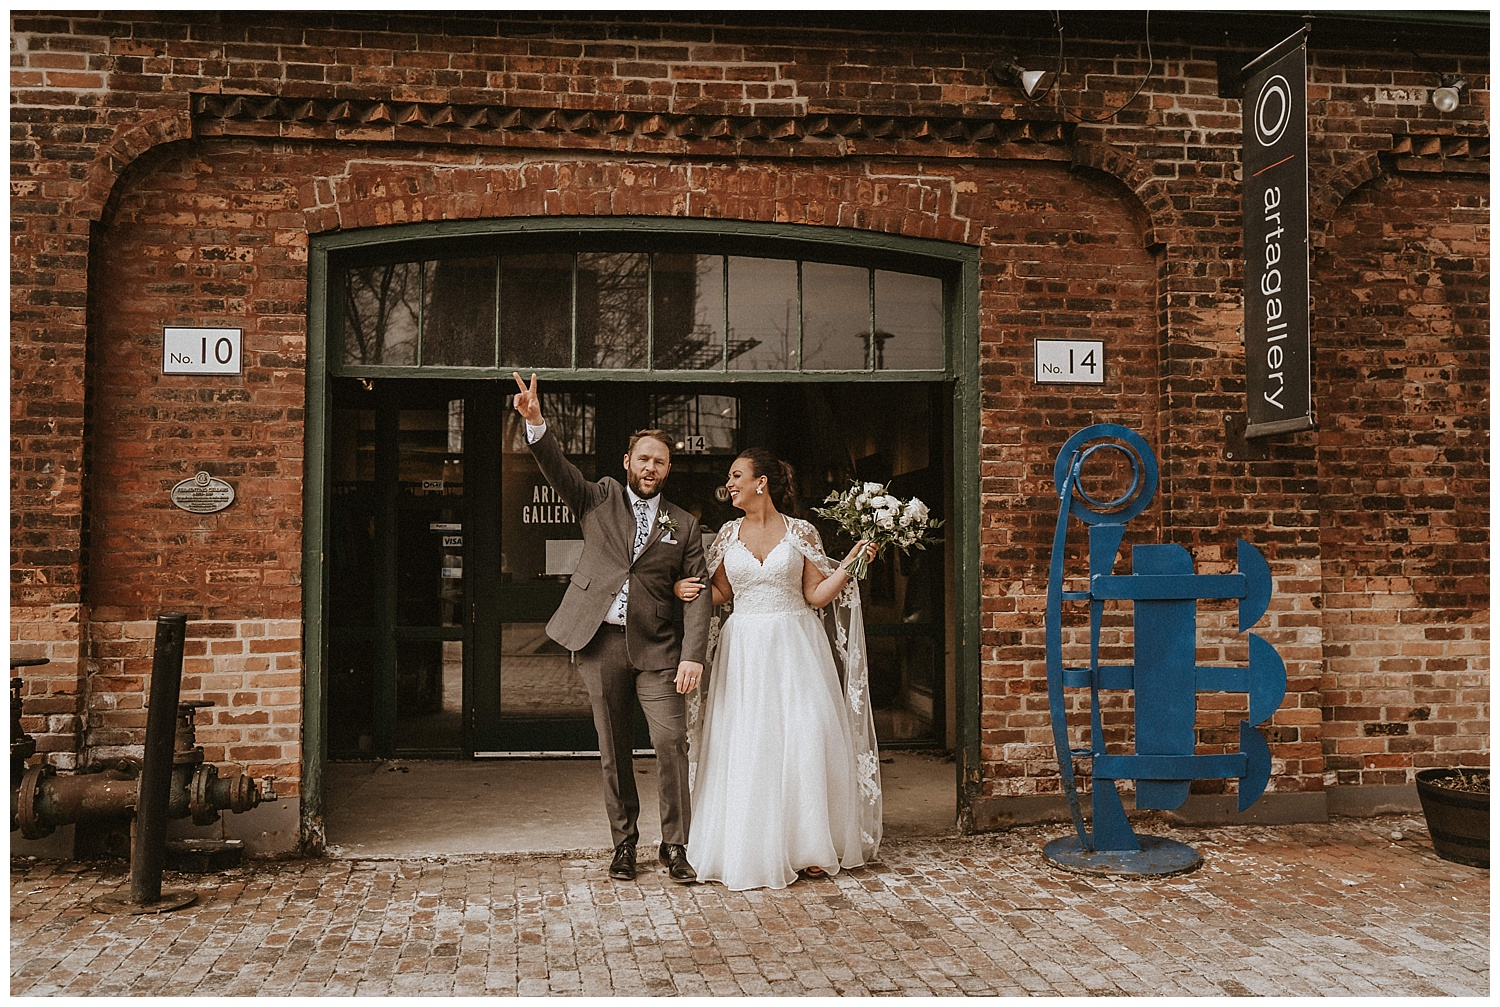 Katie Marie Photography | Archeo Wedding Arta Gallery Wedding | Distillery District Wedding | Toronto Wedding Photographer | Hamilton Toronto Ontario Wedding Photographer |_0113.jpg